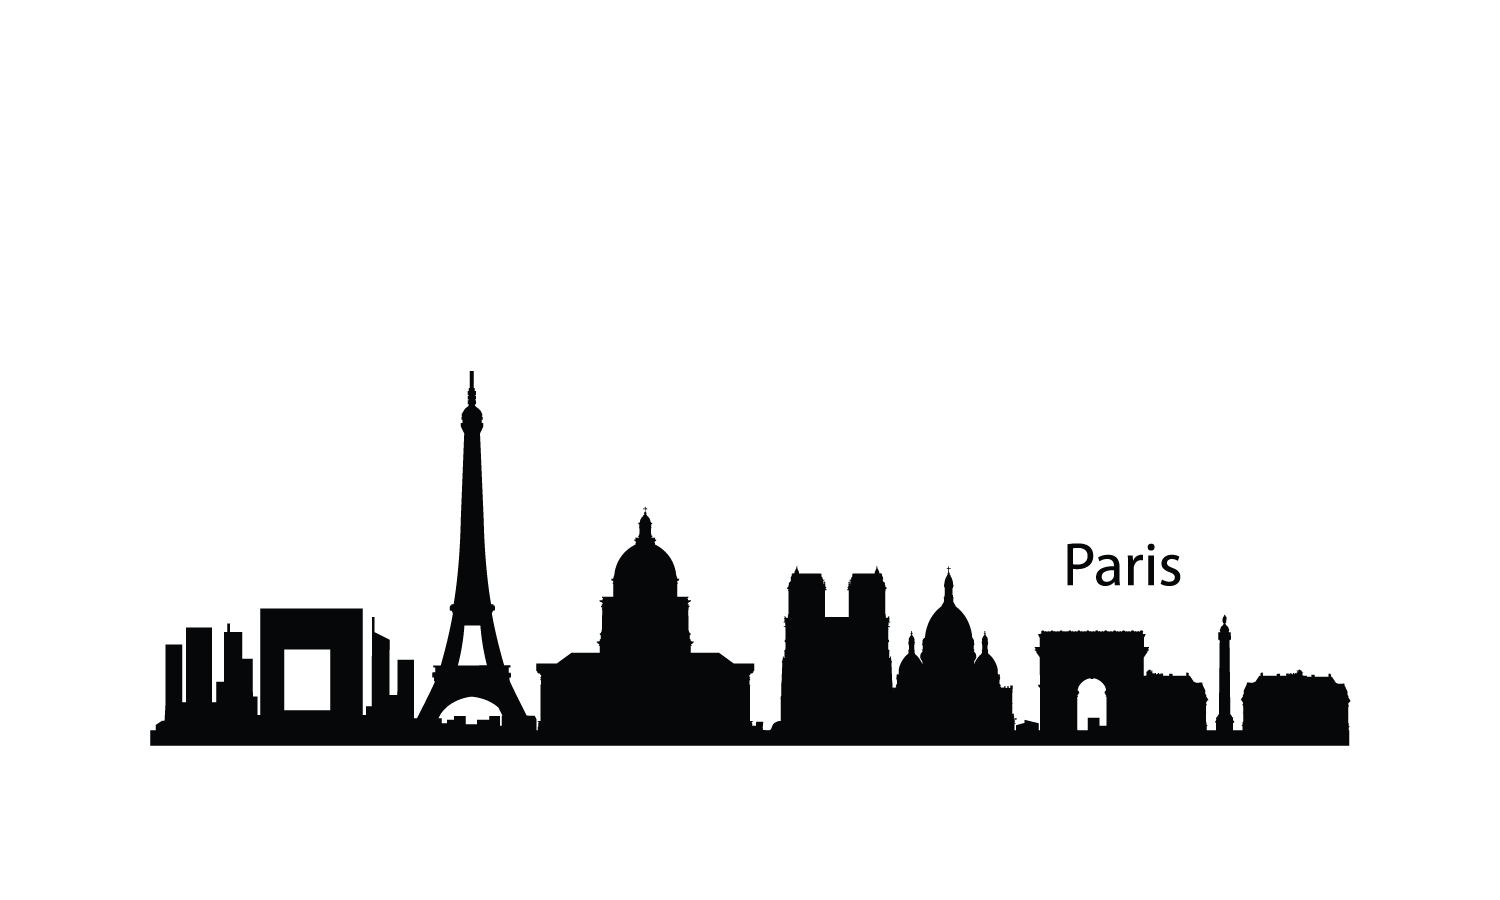 1500x900 Paris Clipart Paris Skyline Clipart